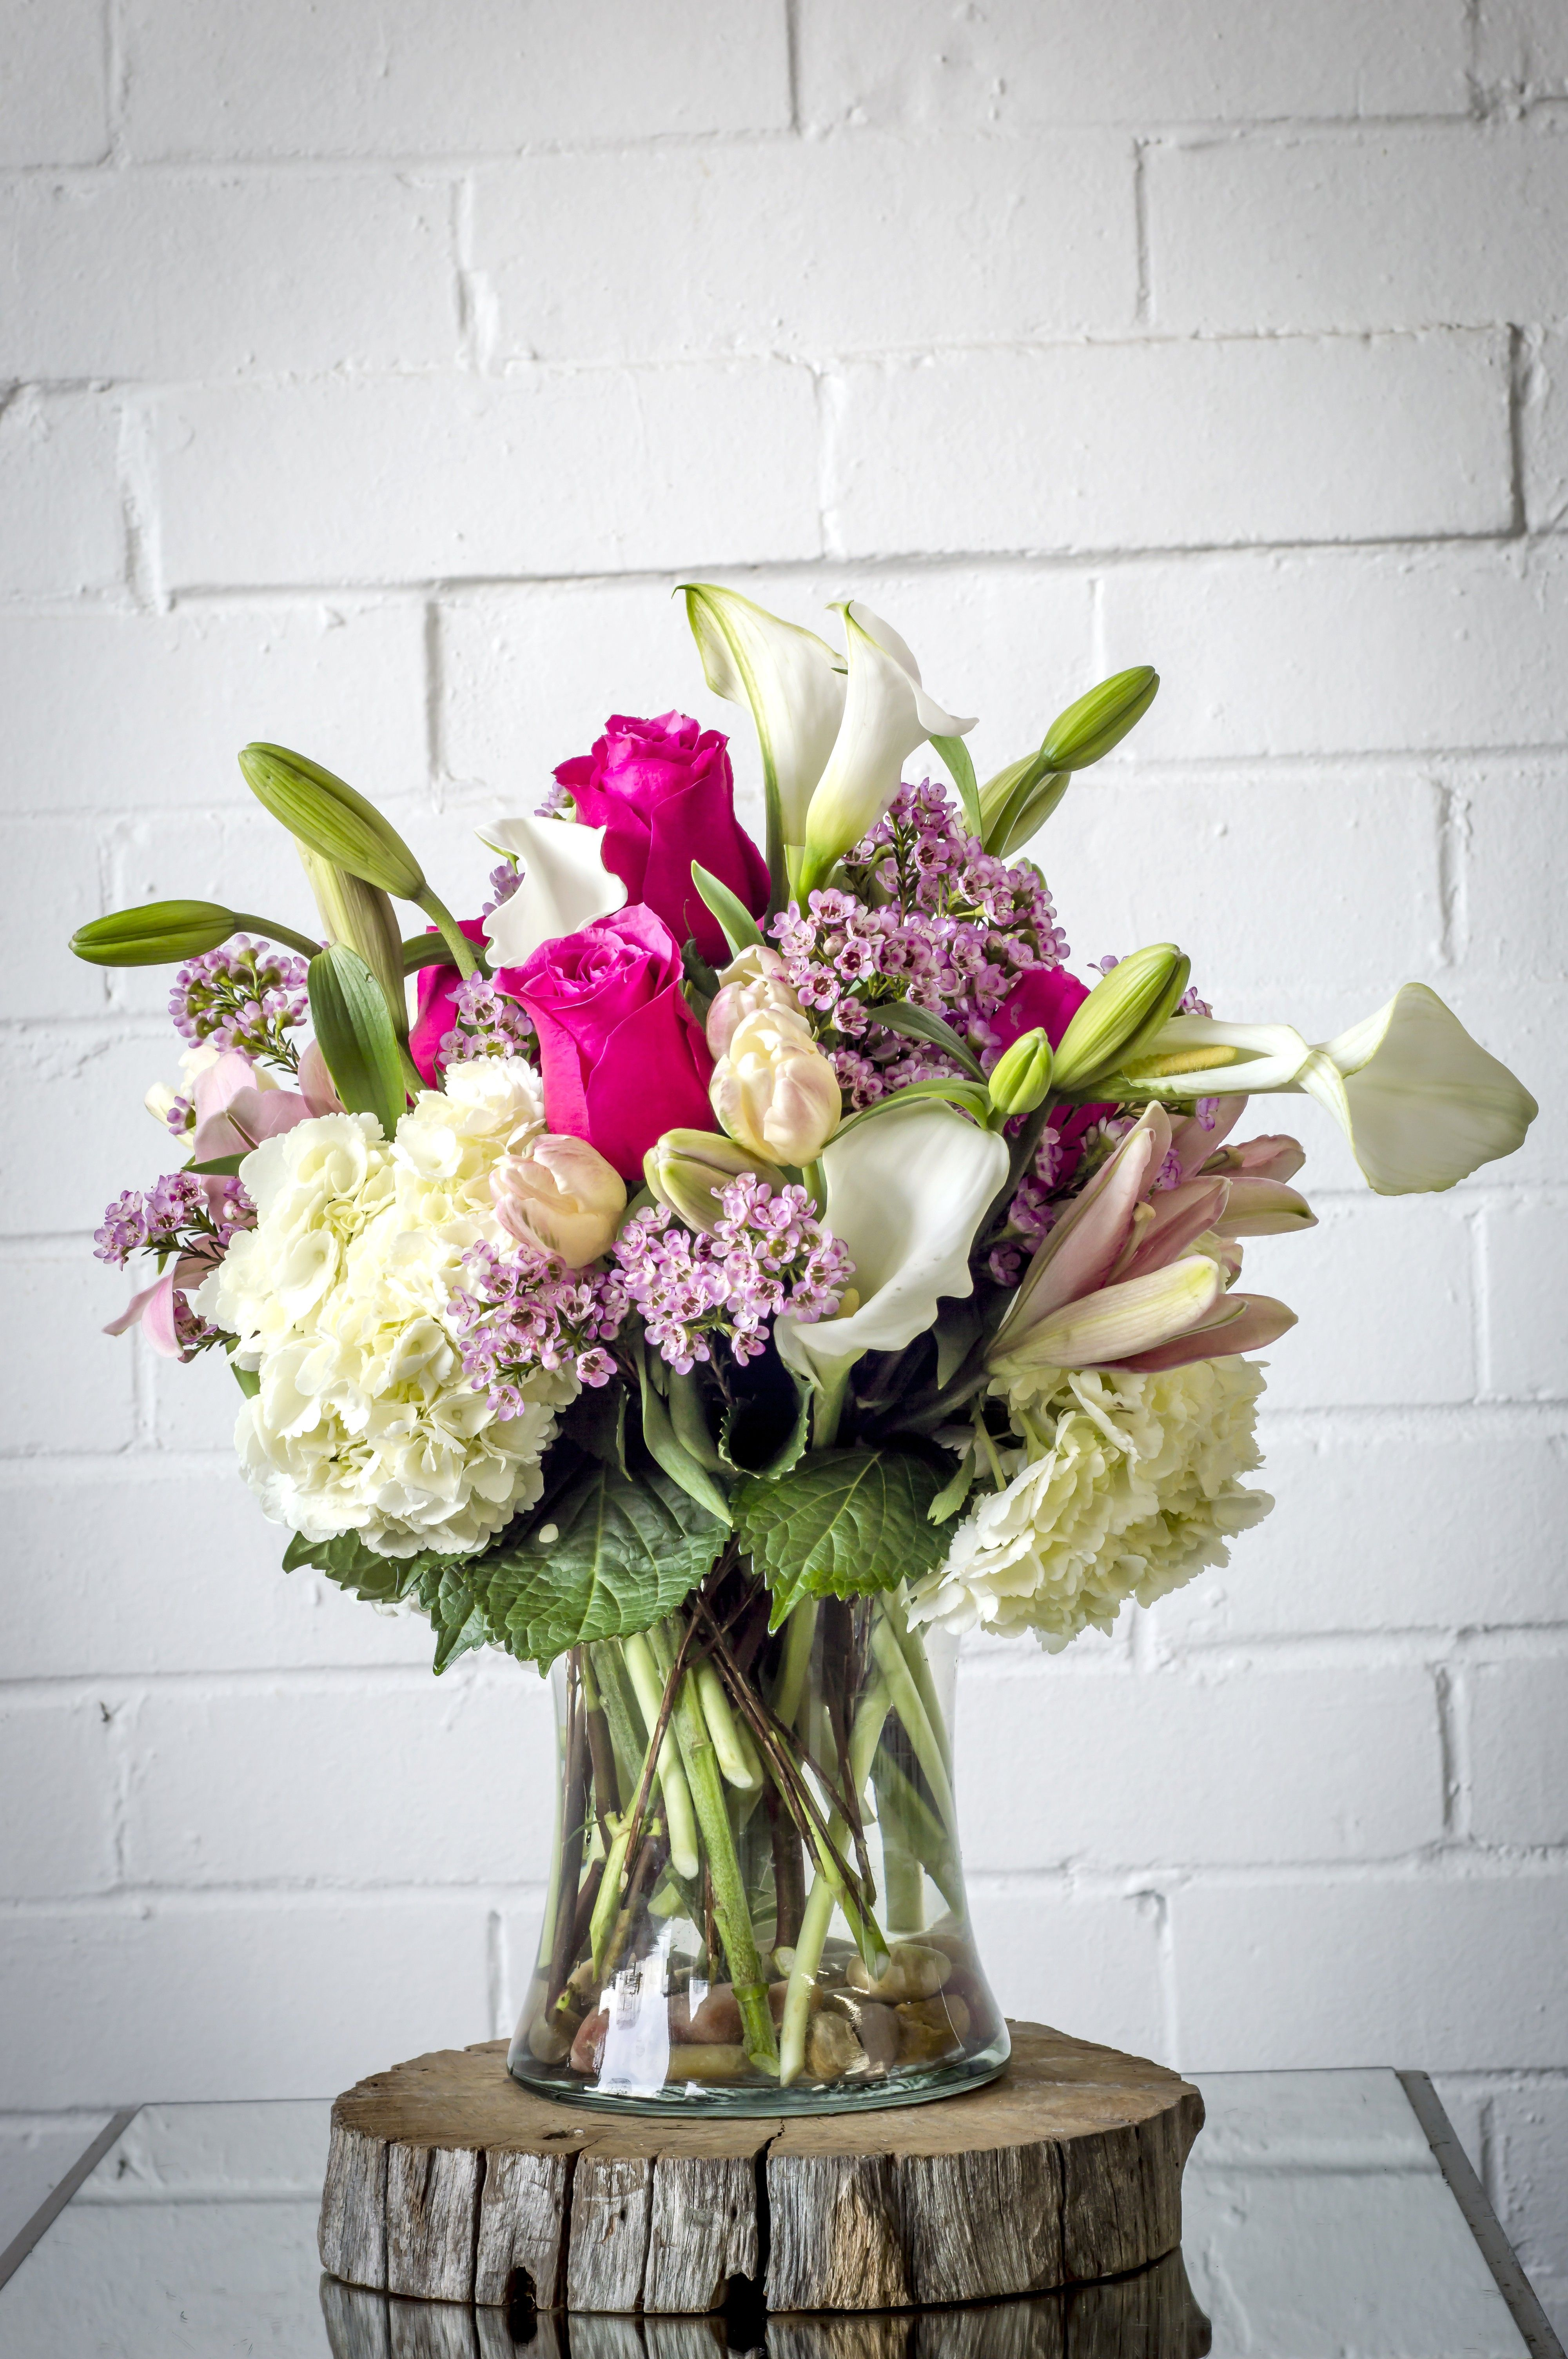 Cheap flower delivery atlanta ga gallery flower wallpaper hd love love and love florists flowers and flower delivery flower izmirmasajfo izmirmasajfo